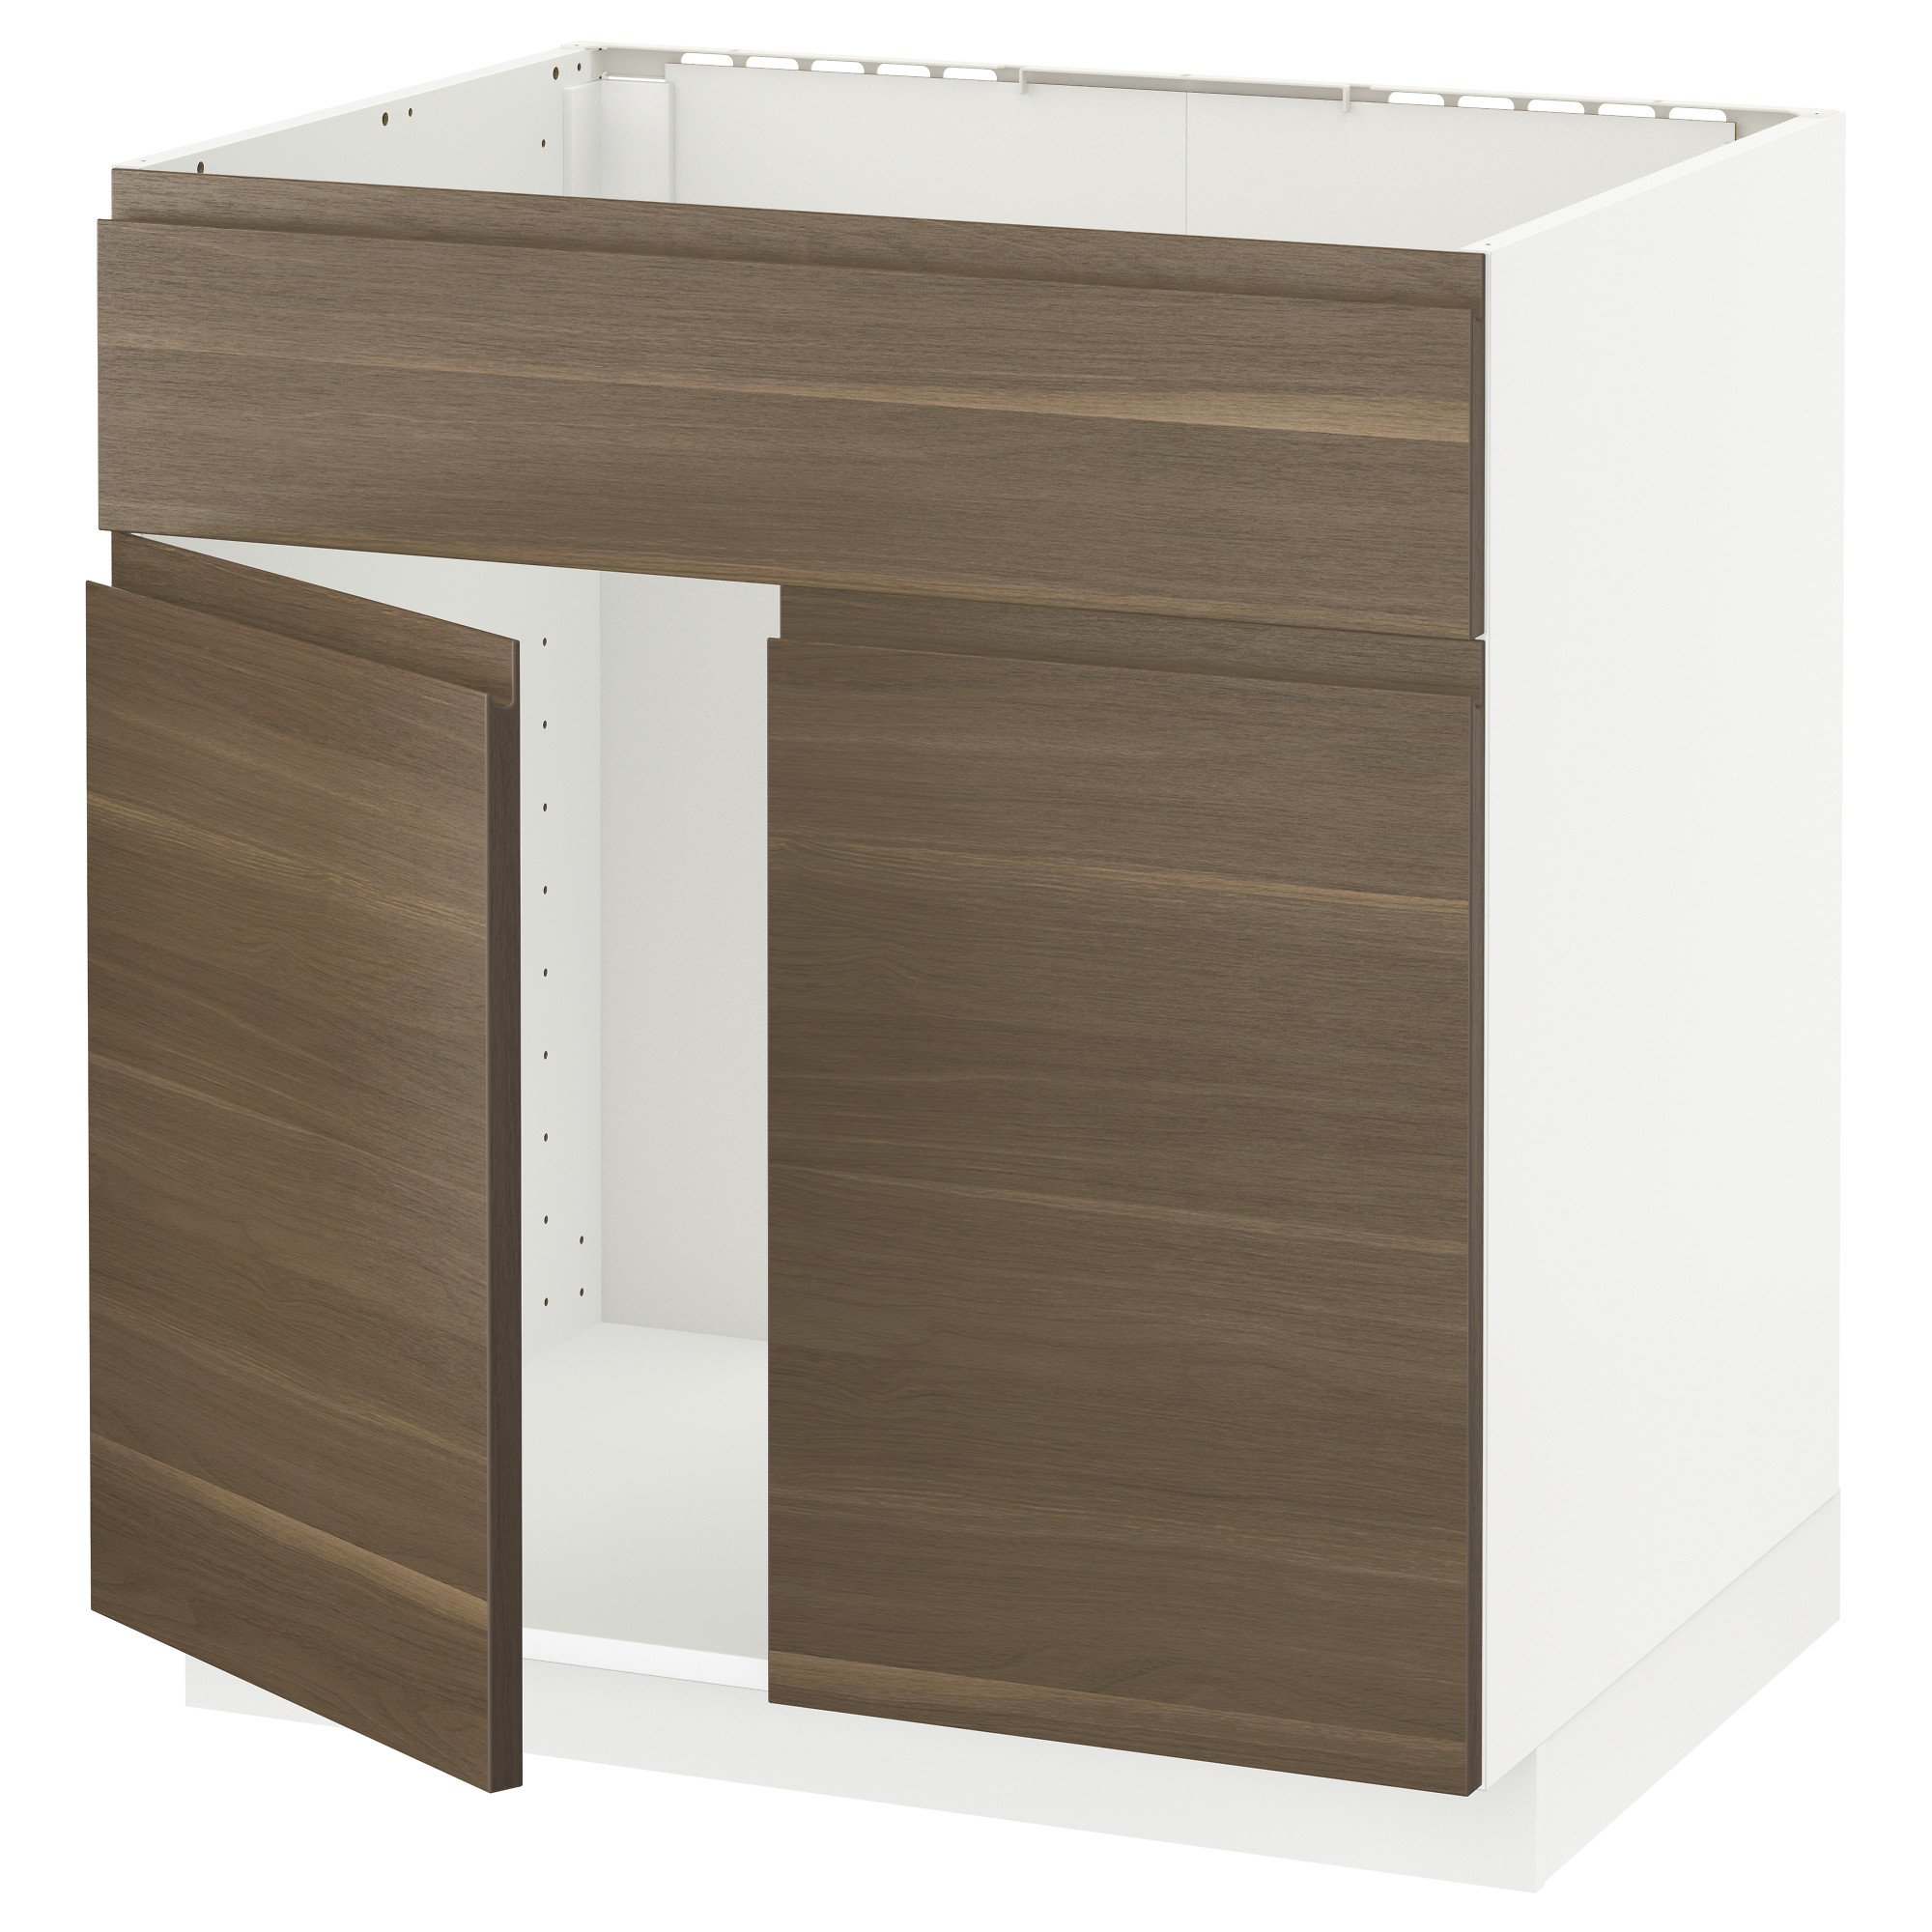 METOD Base cabinet f sink w 2 doors/front - white, Voxtorp walnut ...